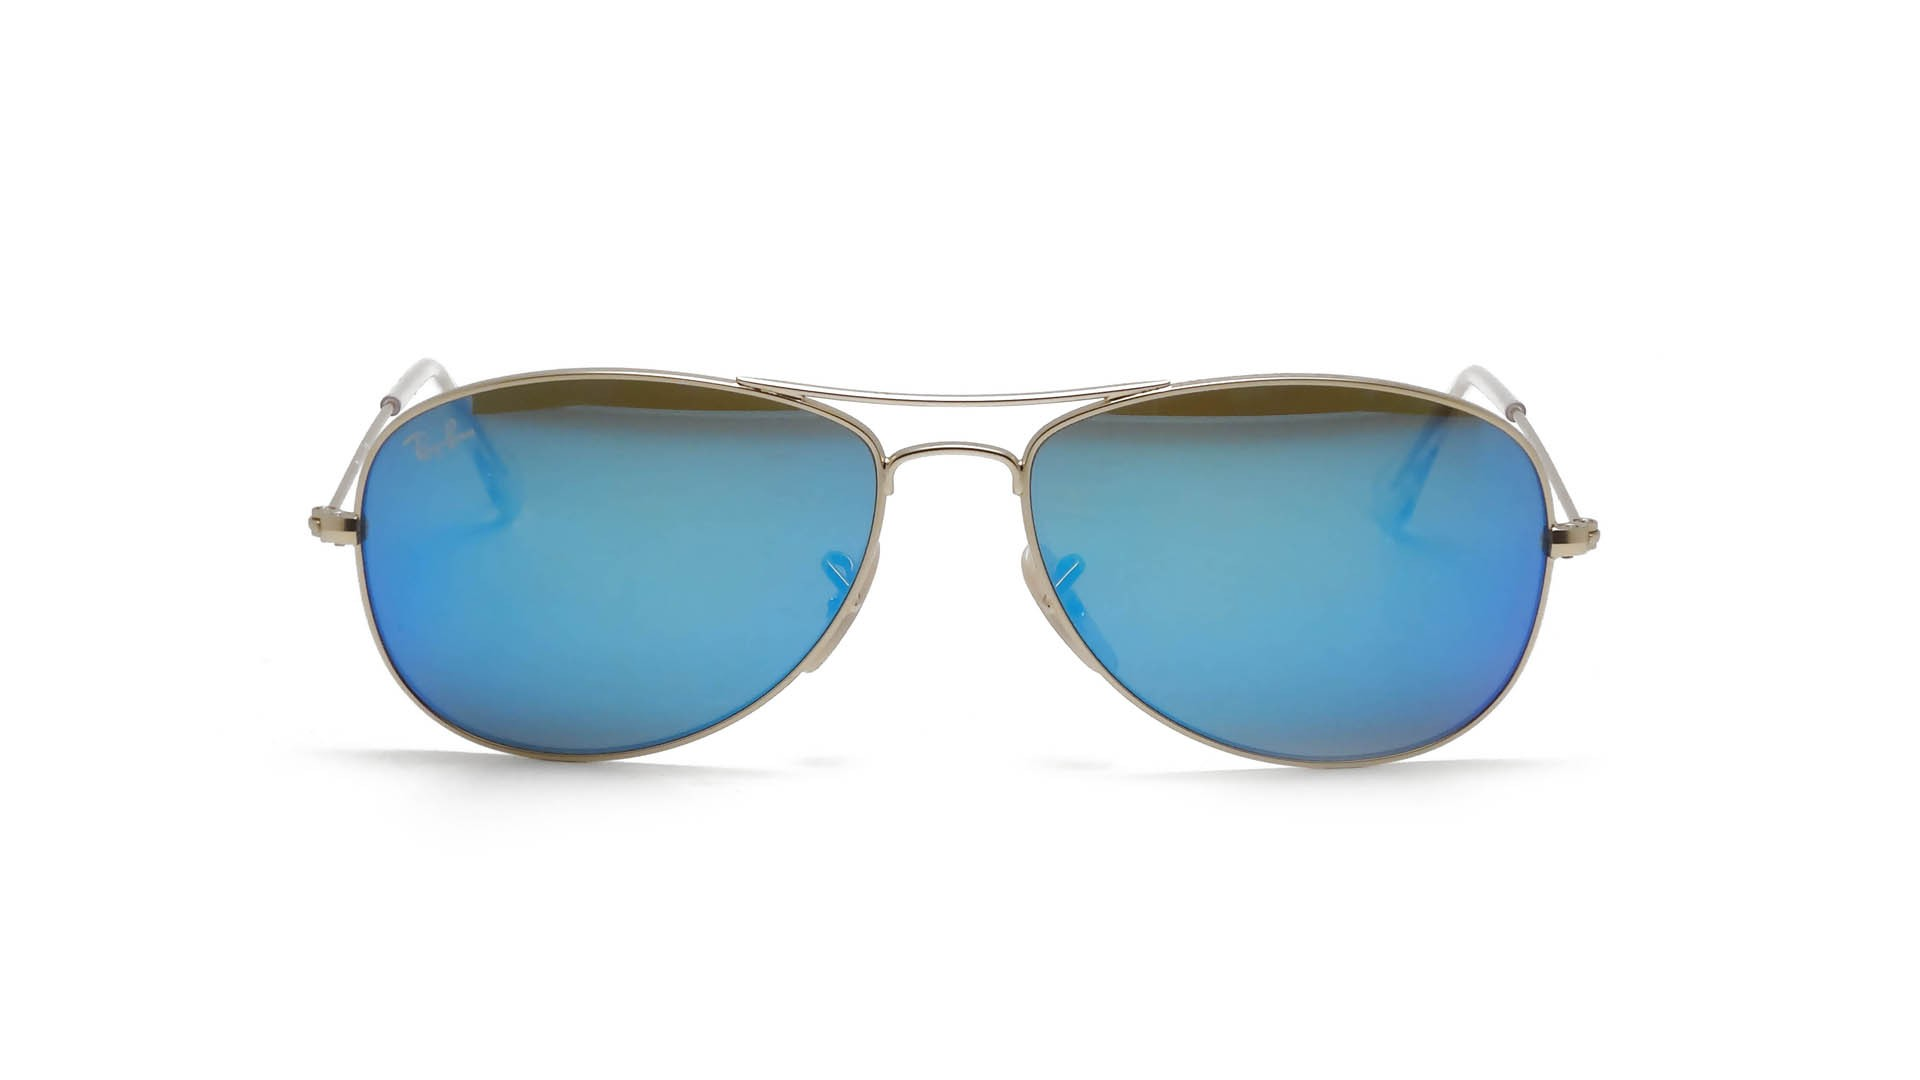 6214c8619c853 Ray Ban Rb 3362 56 Cockpit Usa Leather « Heritage Malta